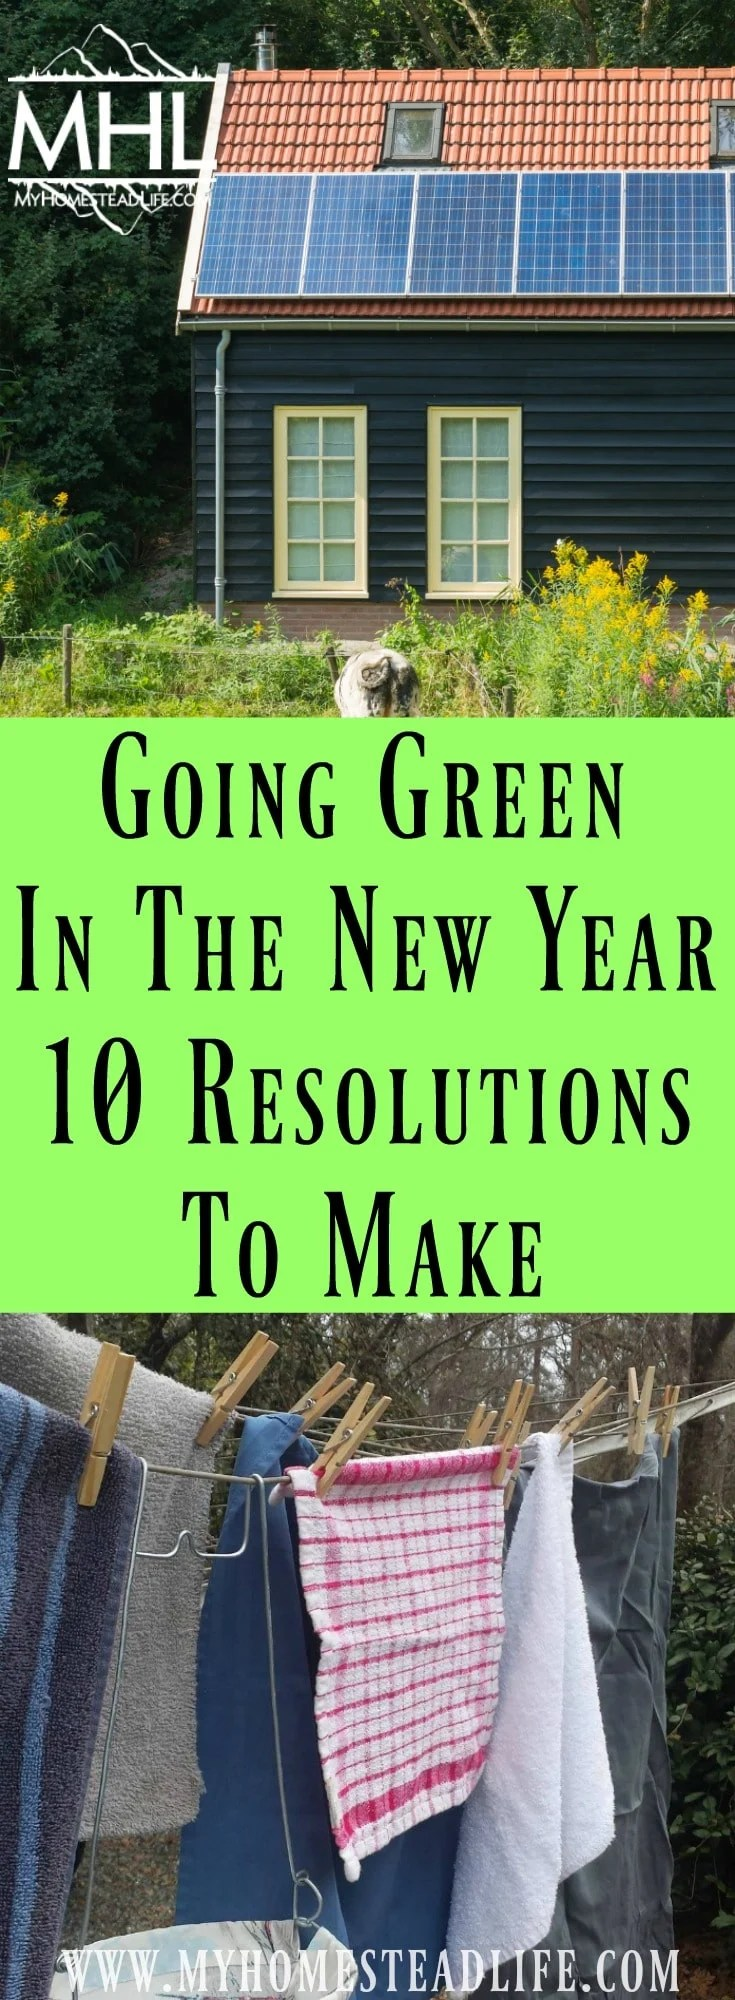 Going Green In The New Year - 10 Resolutions To Make